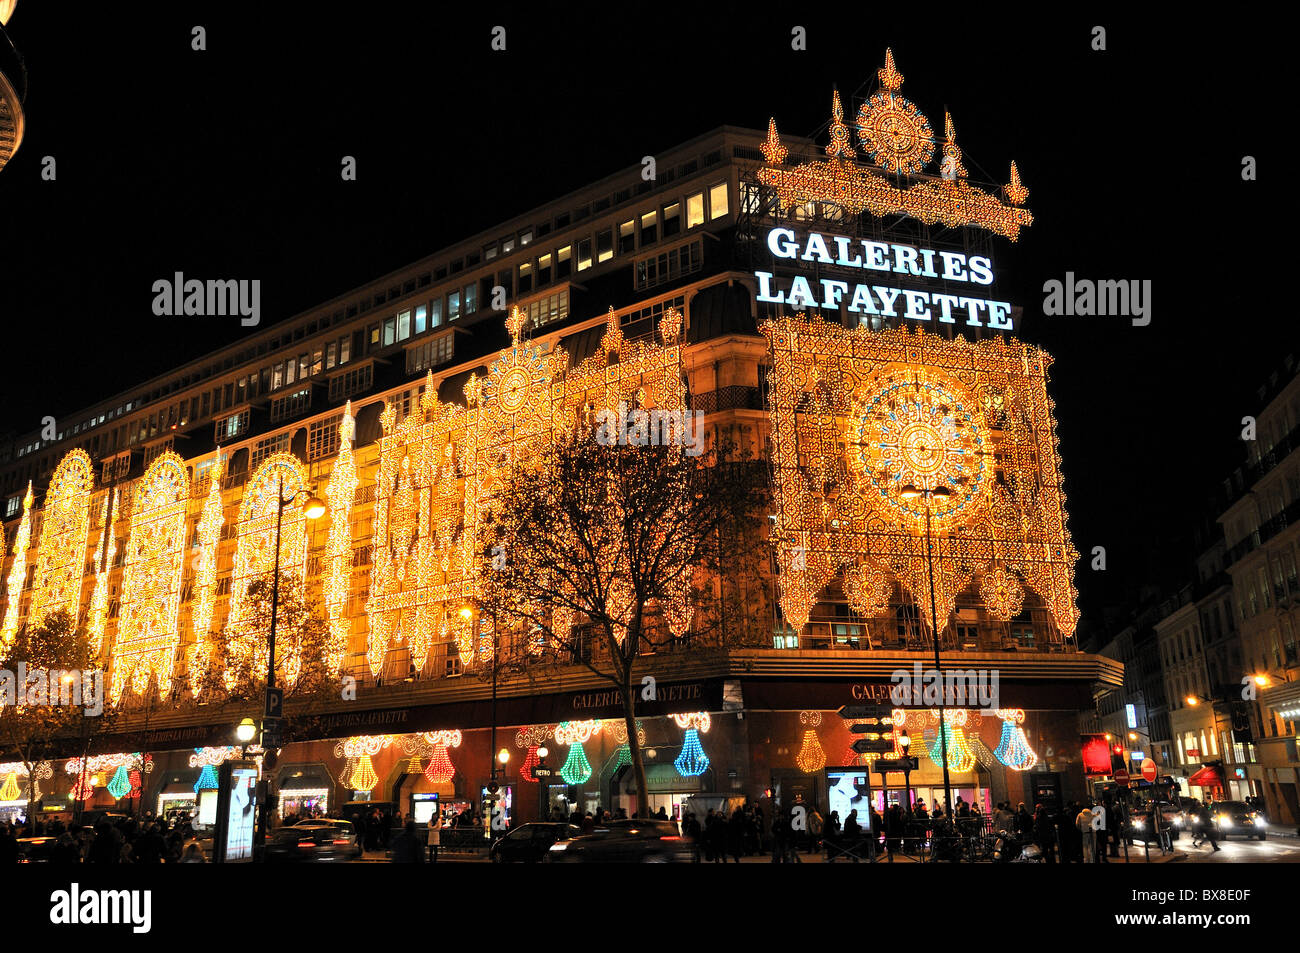 Galeries Lafayette department storeParis at night with Christmas lighting & Galeries Lafayette department storeParis at night with Christmas ...